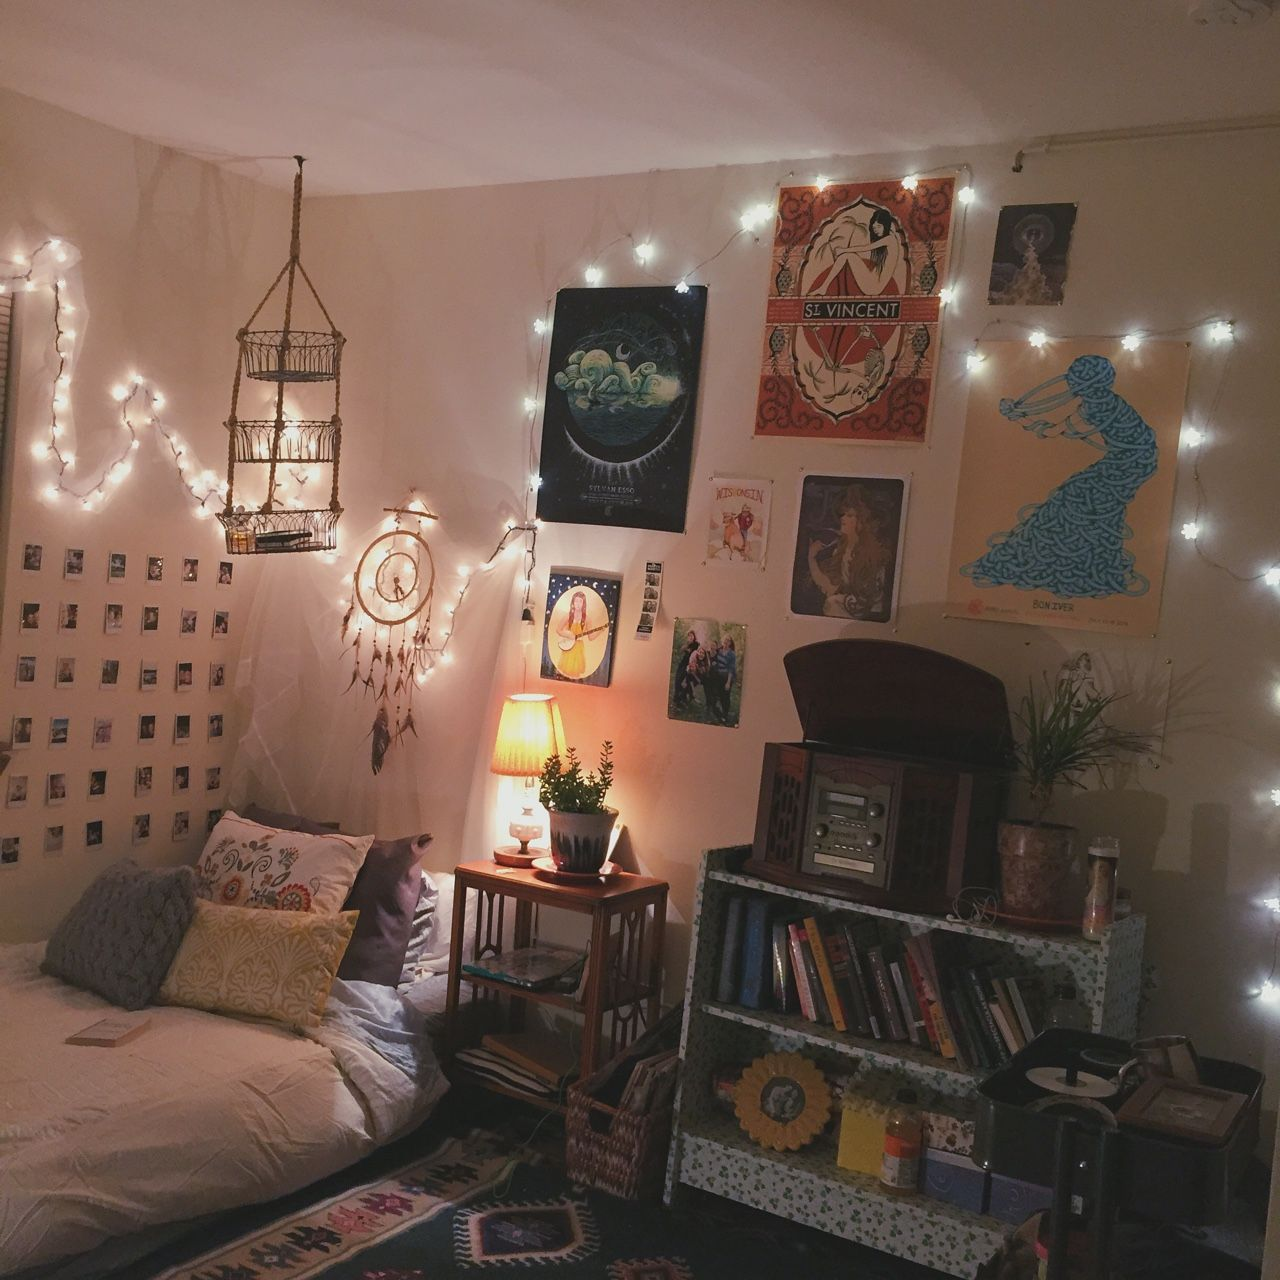 Hipster dorm room tumblr - Explore Grunge Bedroom Hipster Bedrooms And More